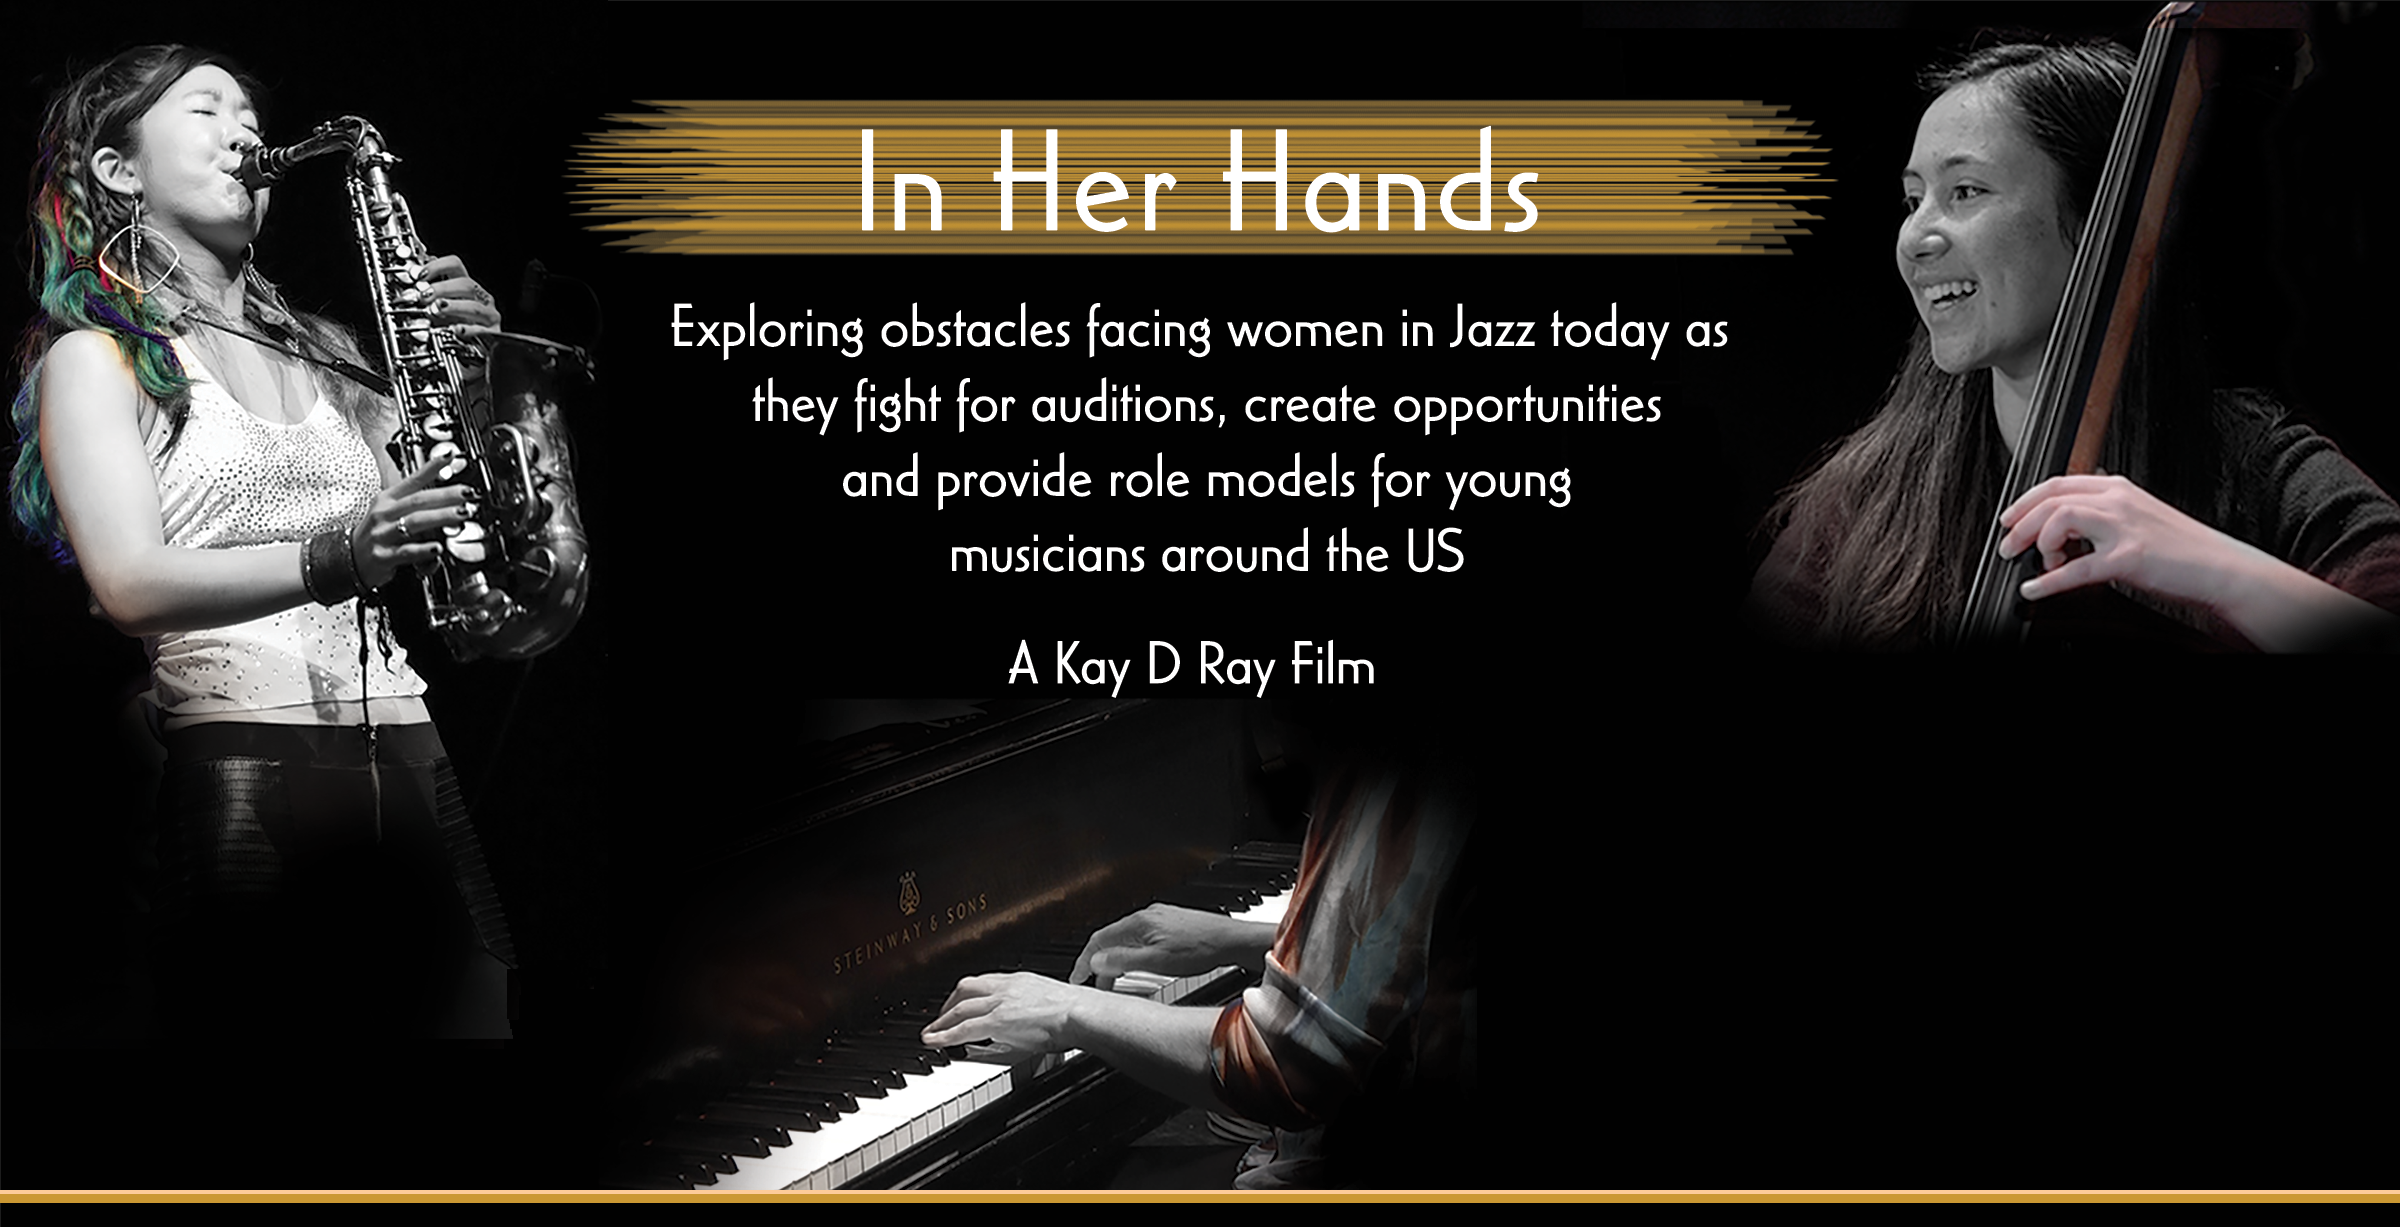 In Her Hands—A Kay D Ray Film